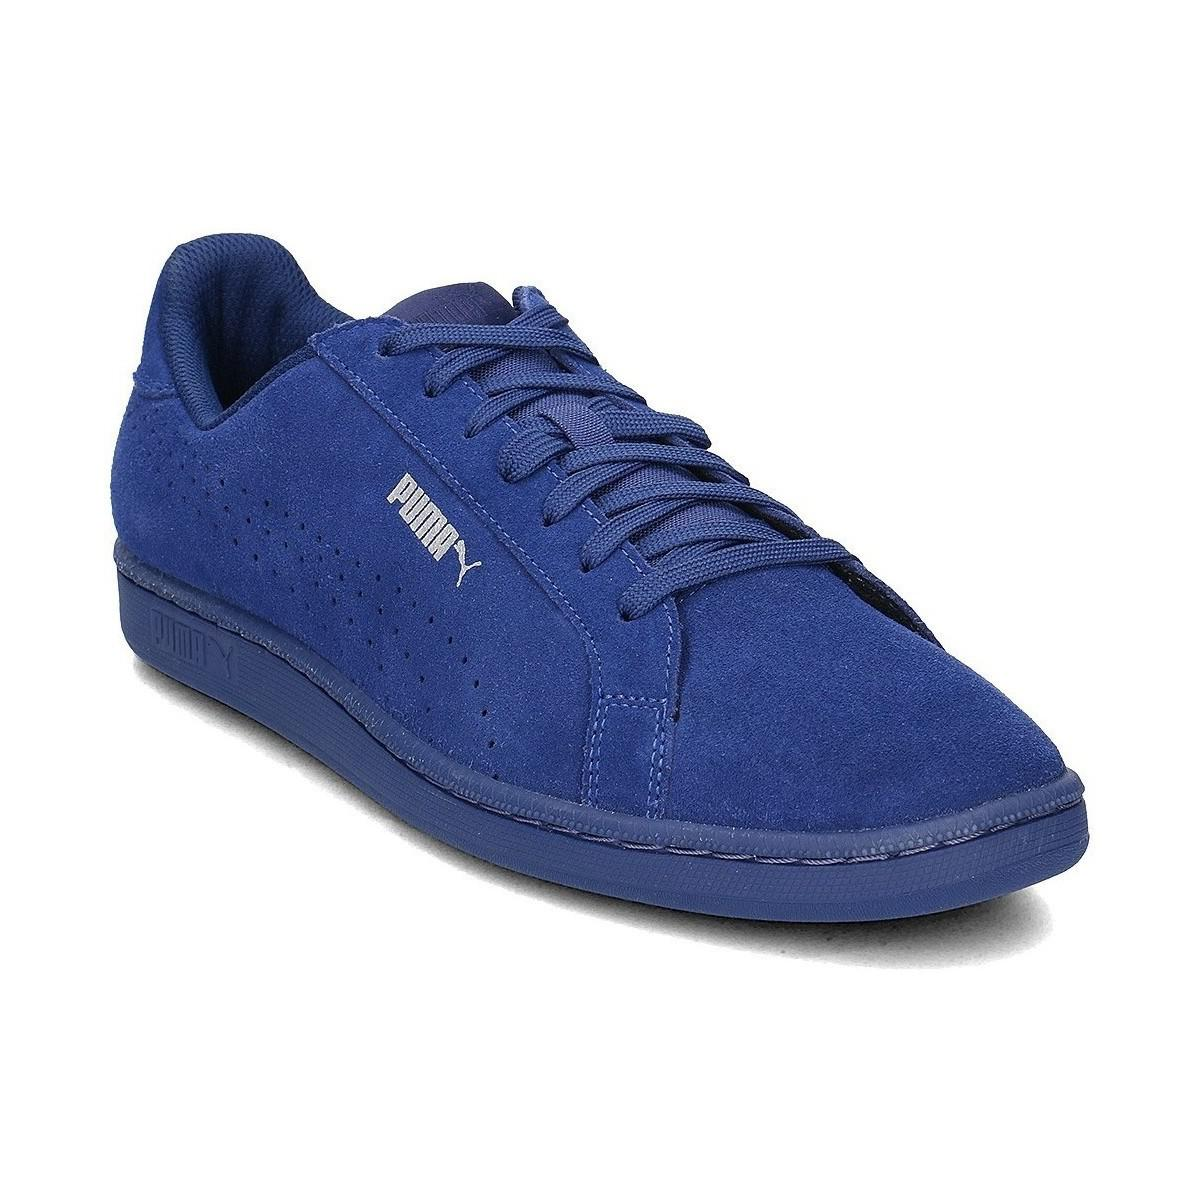 eec3a0c24f7 PUMA Smash Perf Sd Men s Shoes (trainers) In Multicolour in Blue for ...